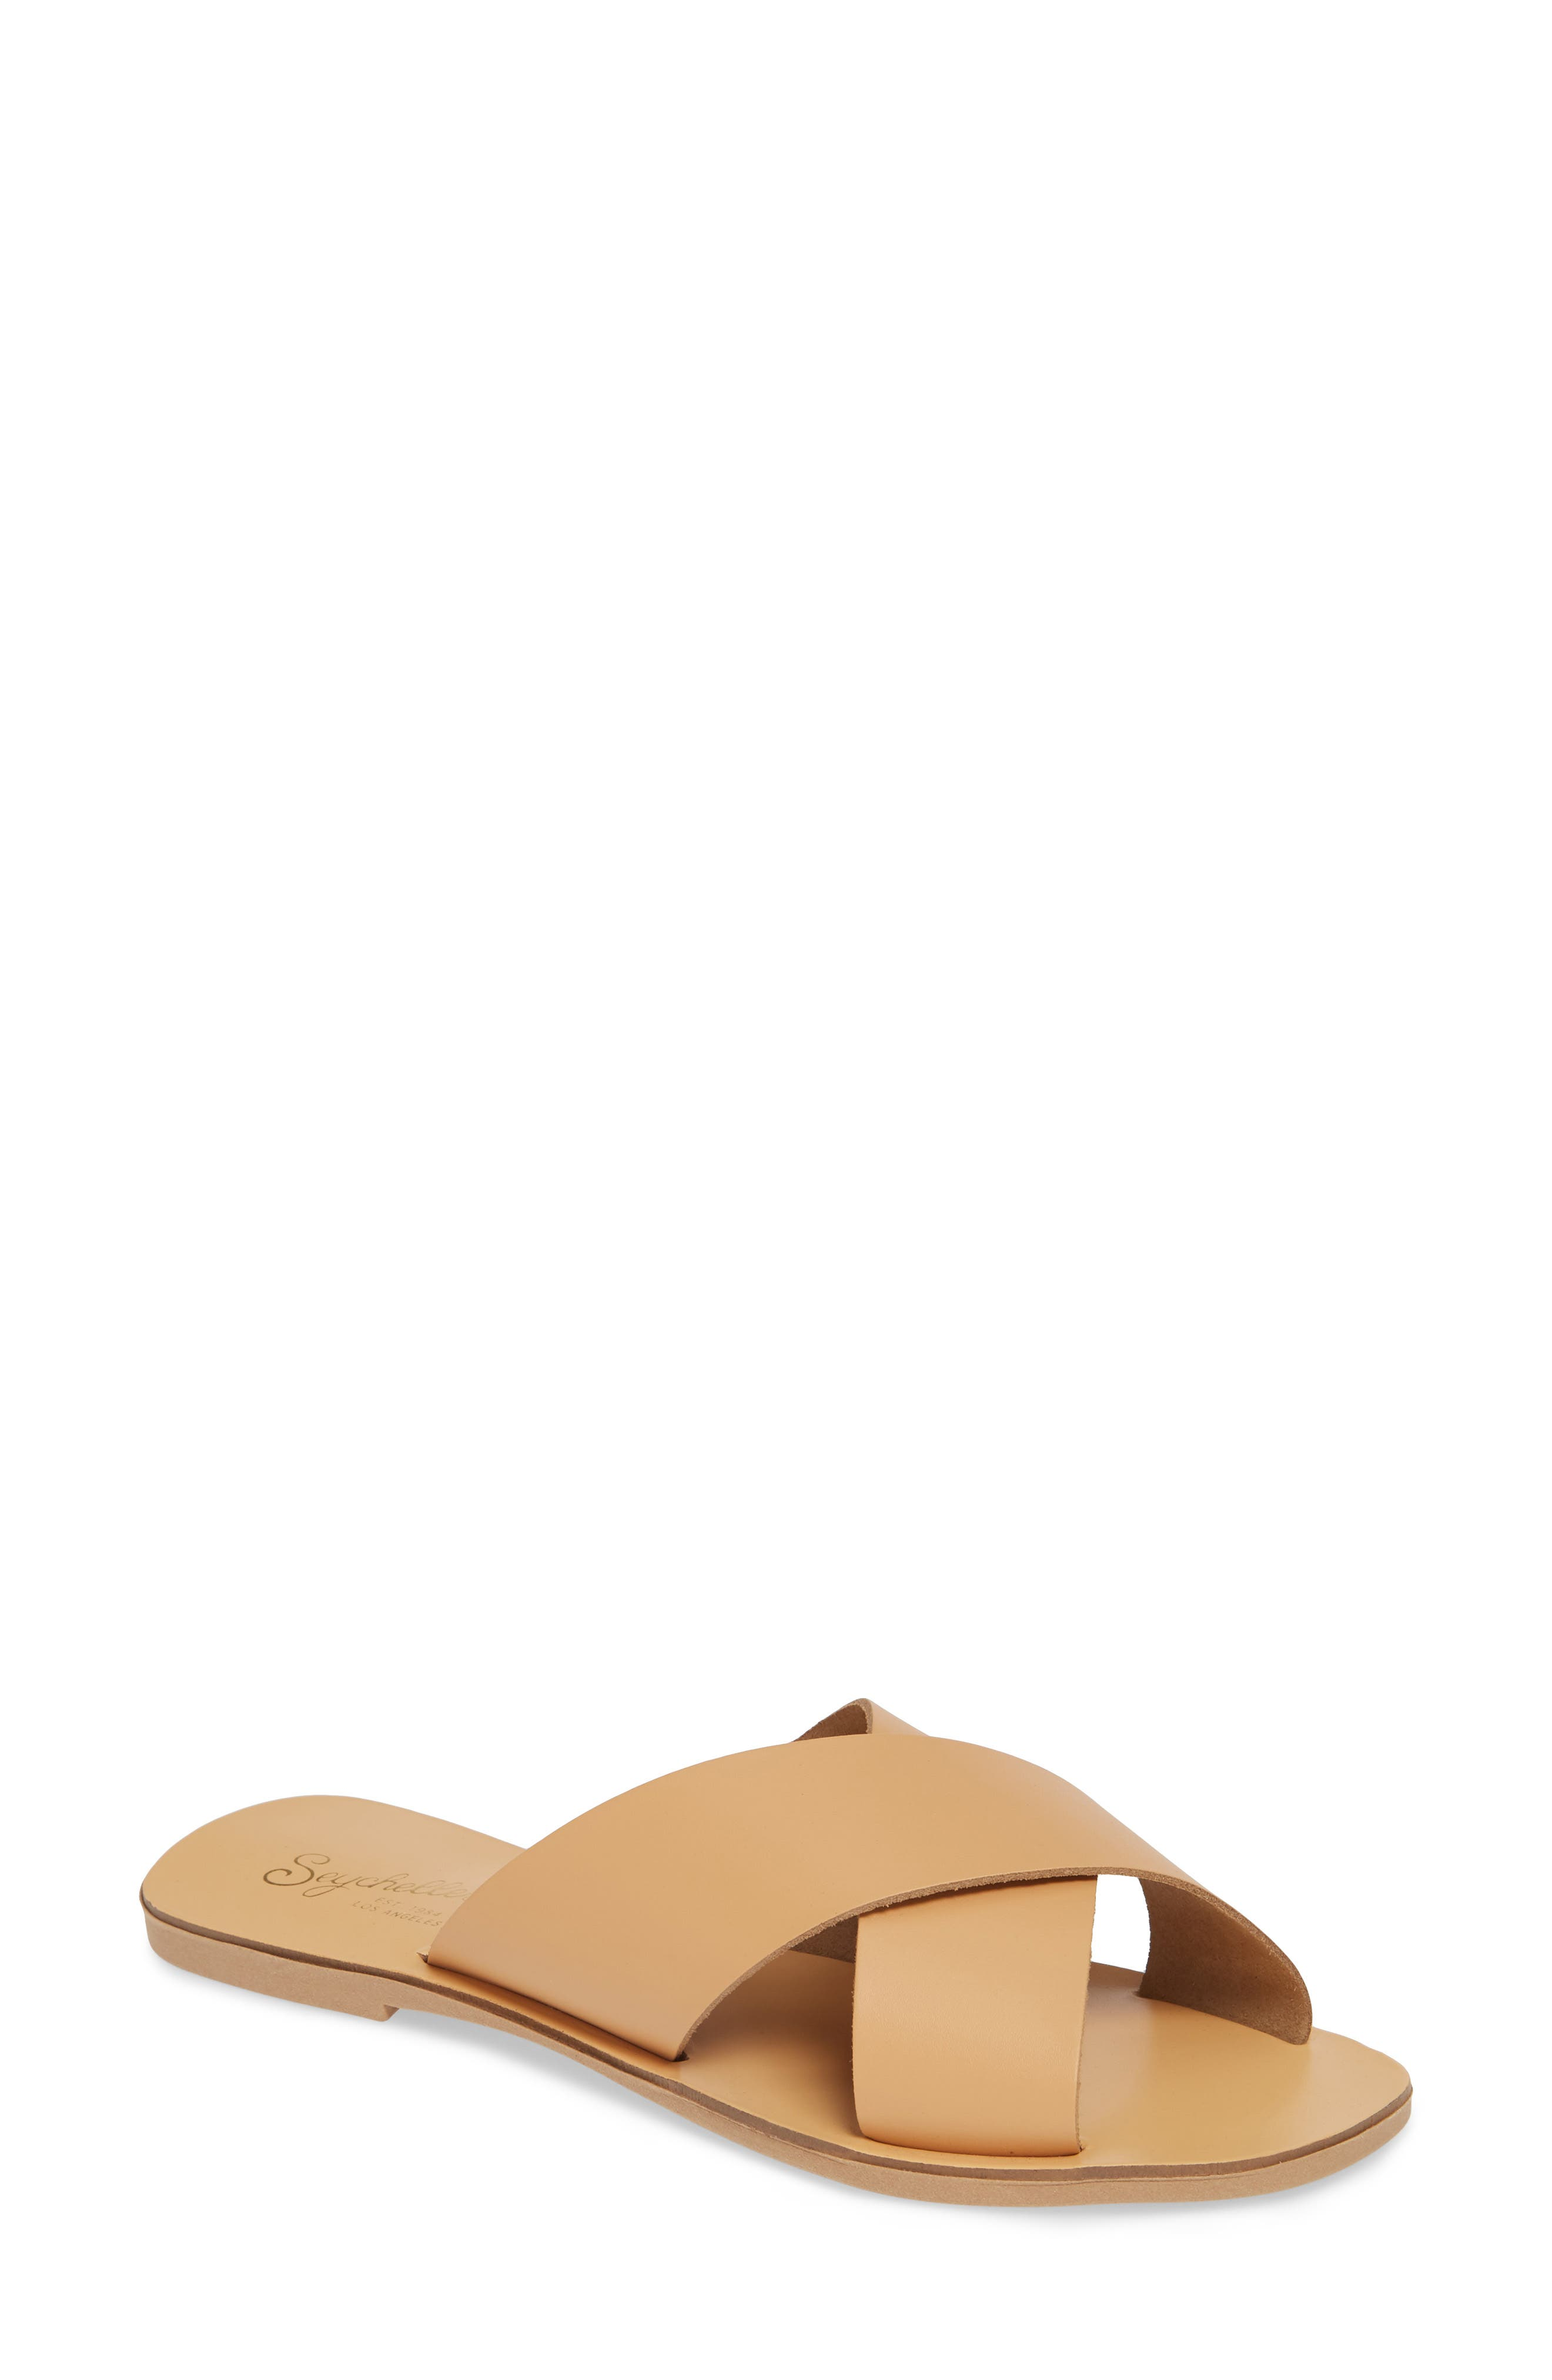 Total Relaxation Slide Sandal, Main, color, BEIGE LEATHER